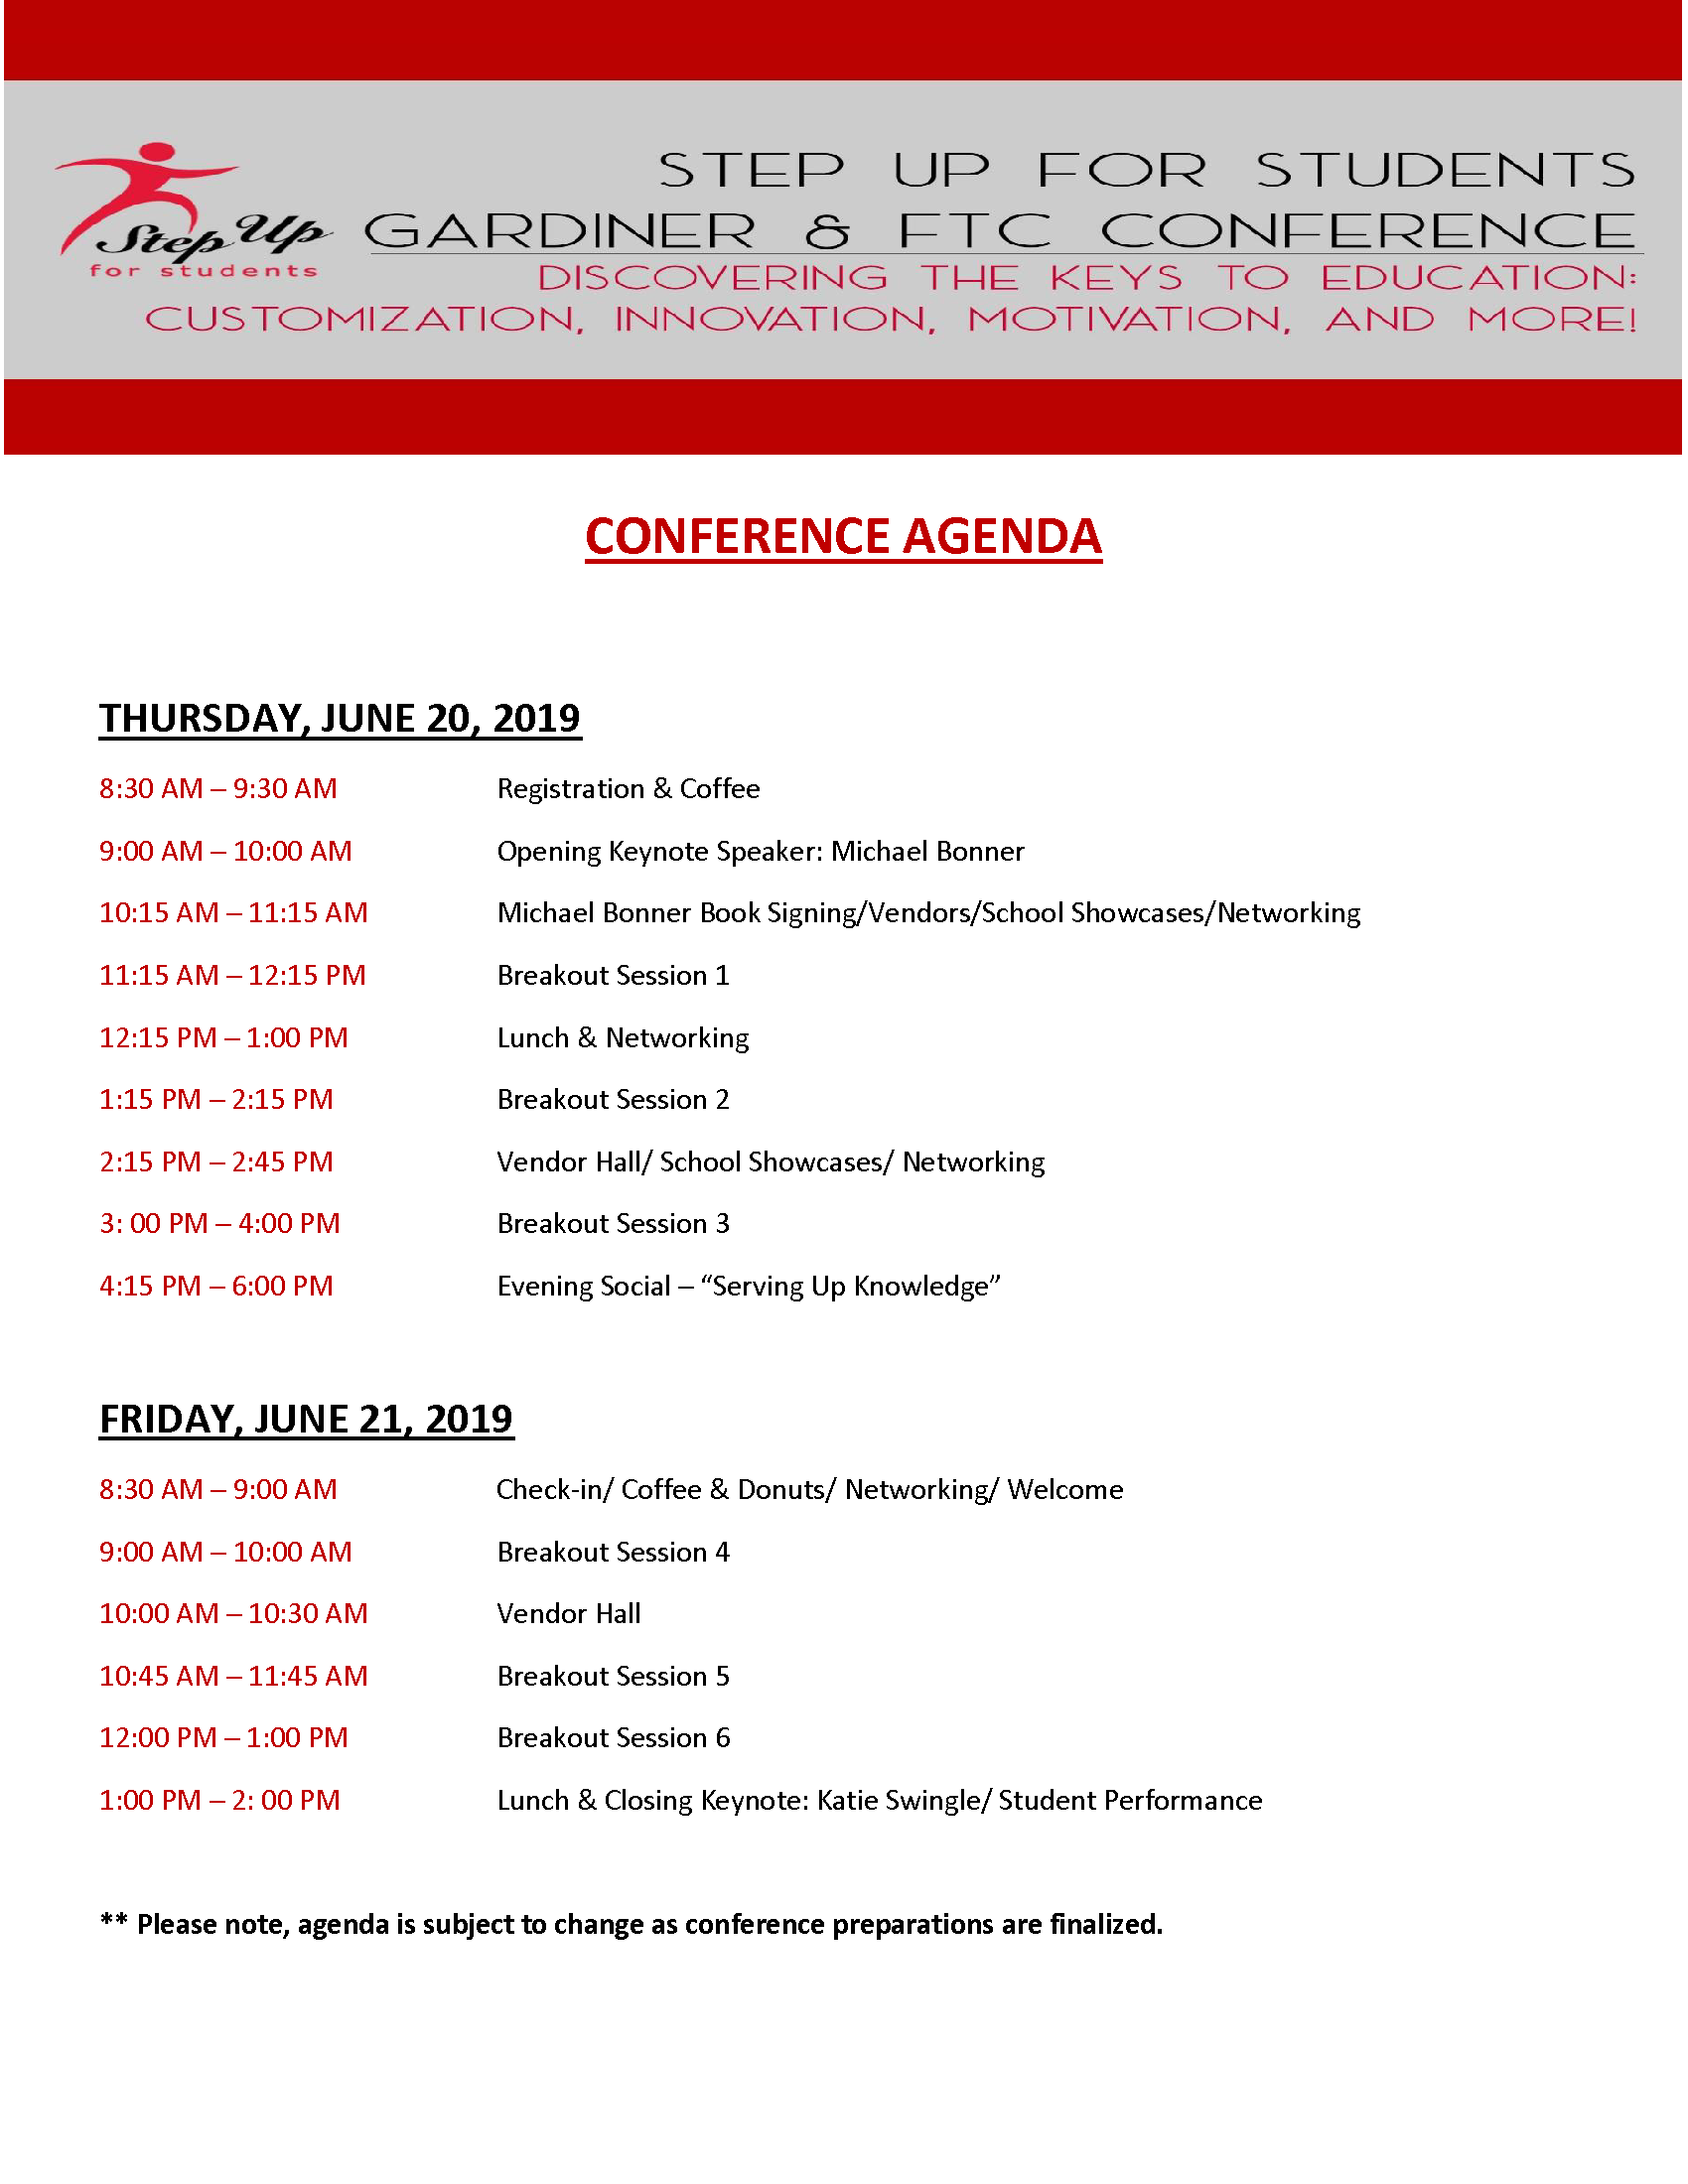 conferenceagendapng.png